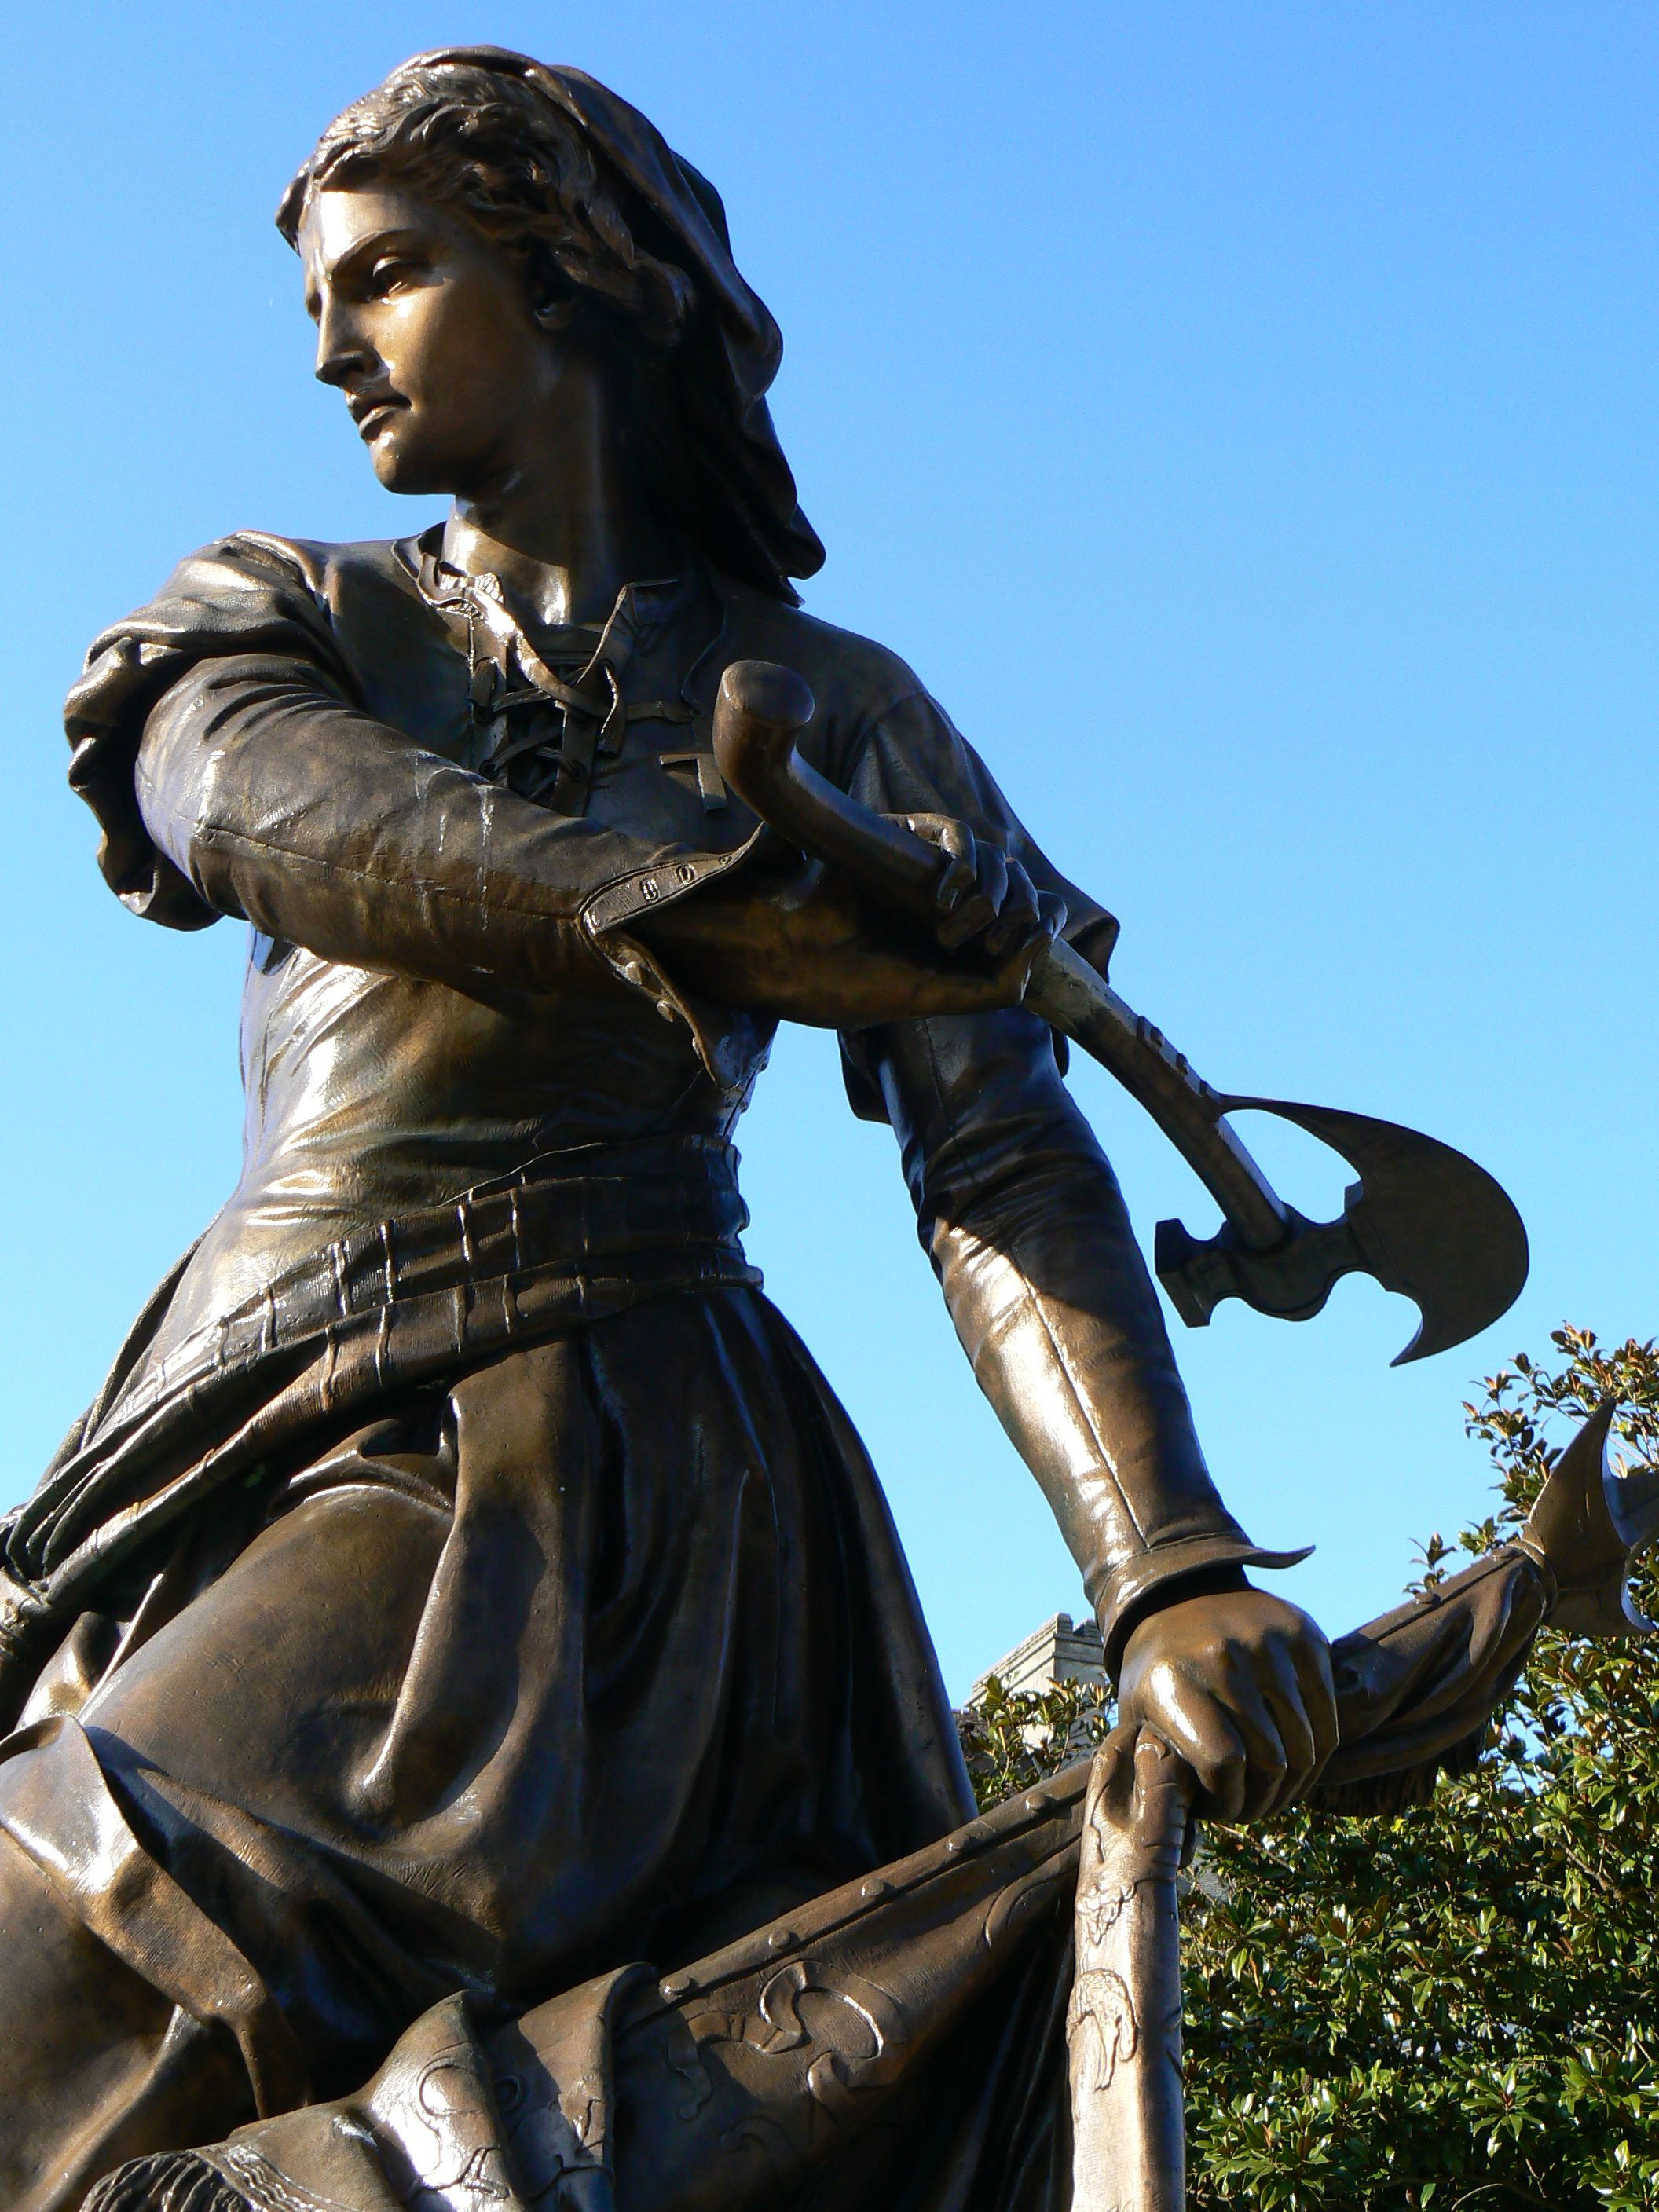 Jeanne Hachette 1851 By Gabriel Vital Dubray 1813 1892 Bronze Statue Located In Beauvais Picardy France Di Warrior Woman Poses 15th Century Clothing